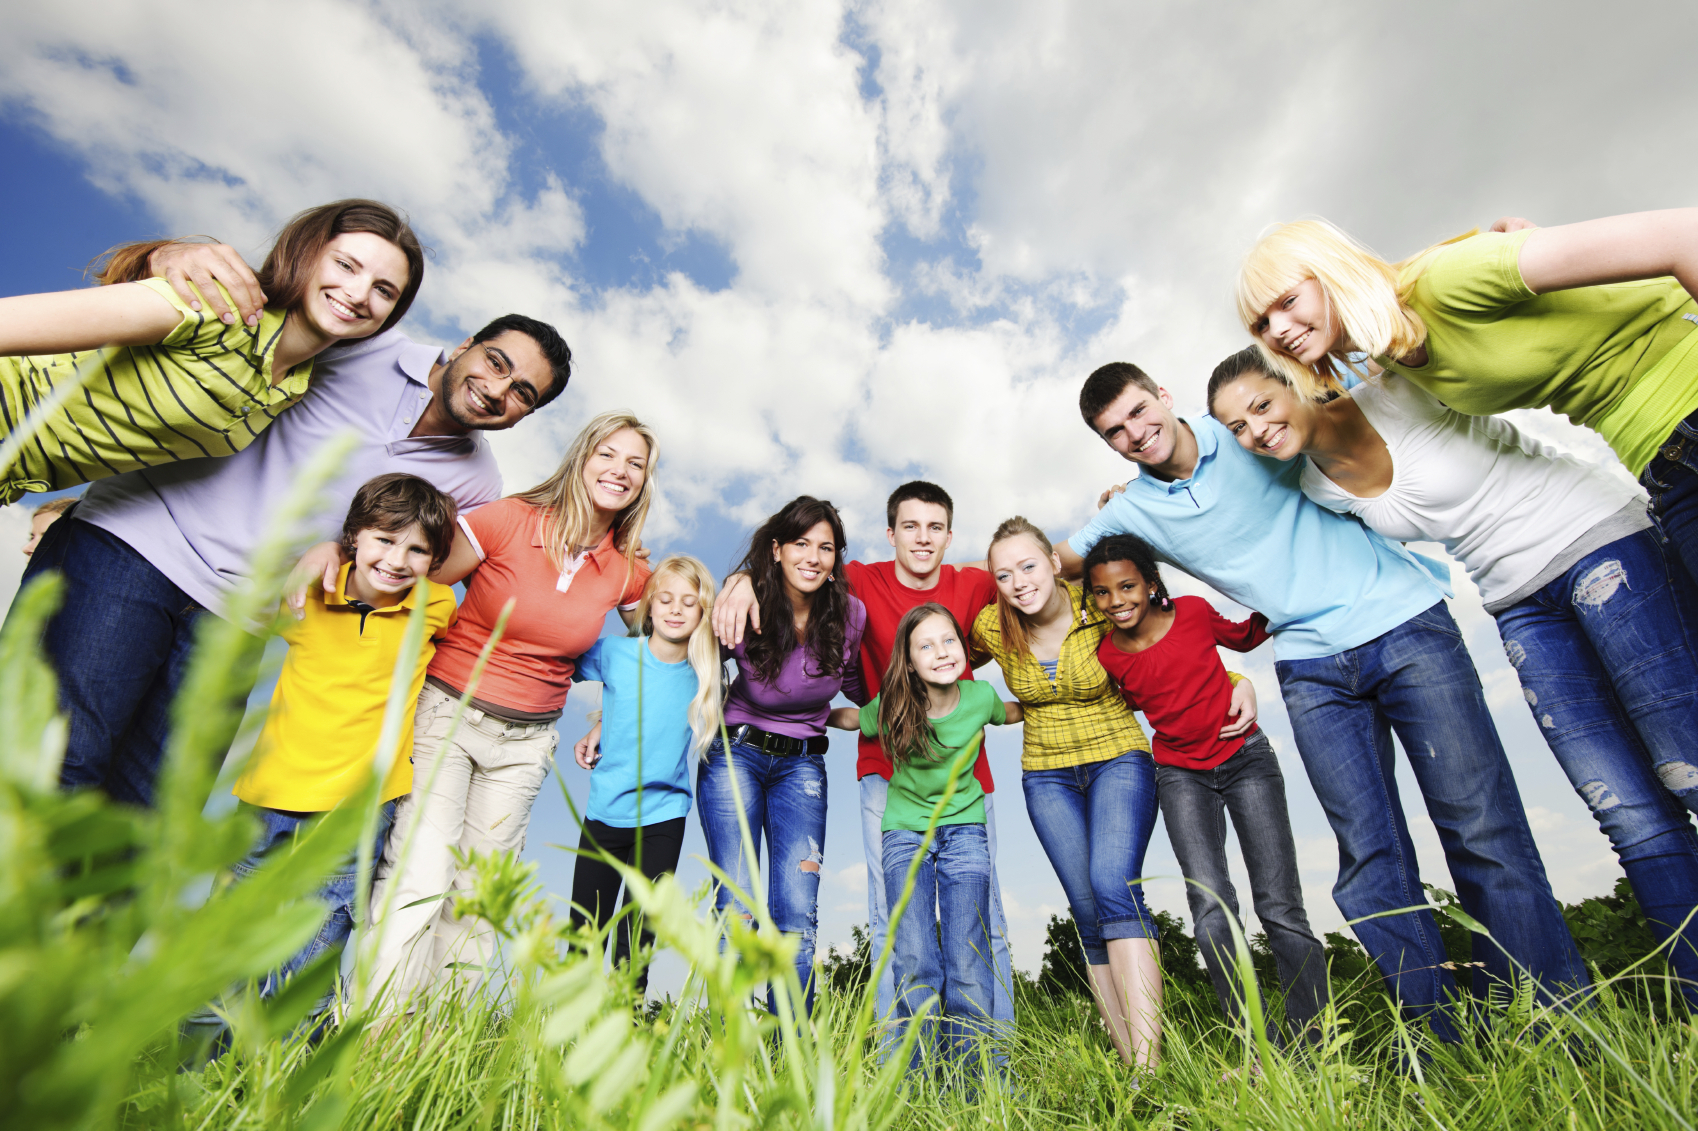 Large embraced young group of people are standing in the nature and looking at the camera.   [url=http://www.istockphoto.com/search/lightbox/9786738][img]http://img830.imageshack.us/img830/1561/groupsk.jpg[/img][/url]